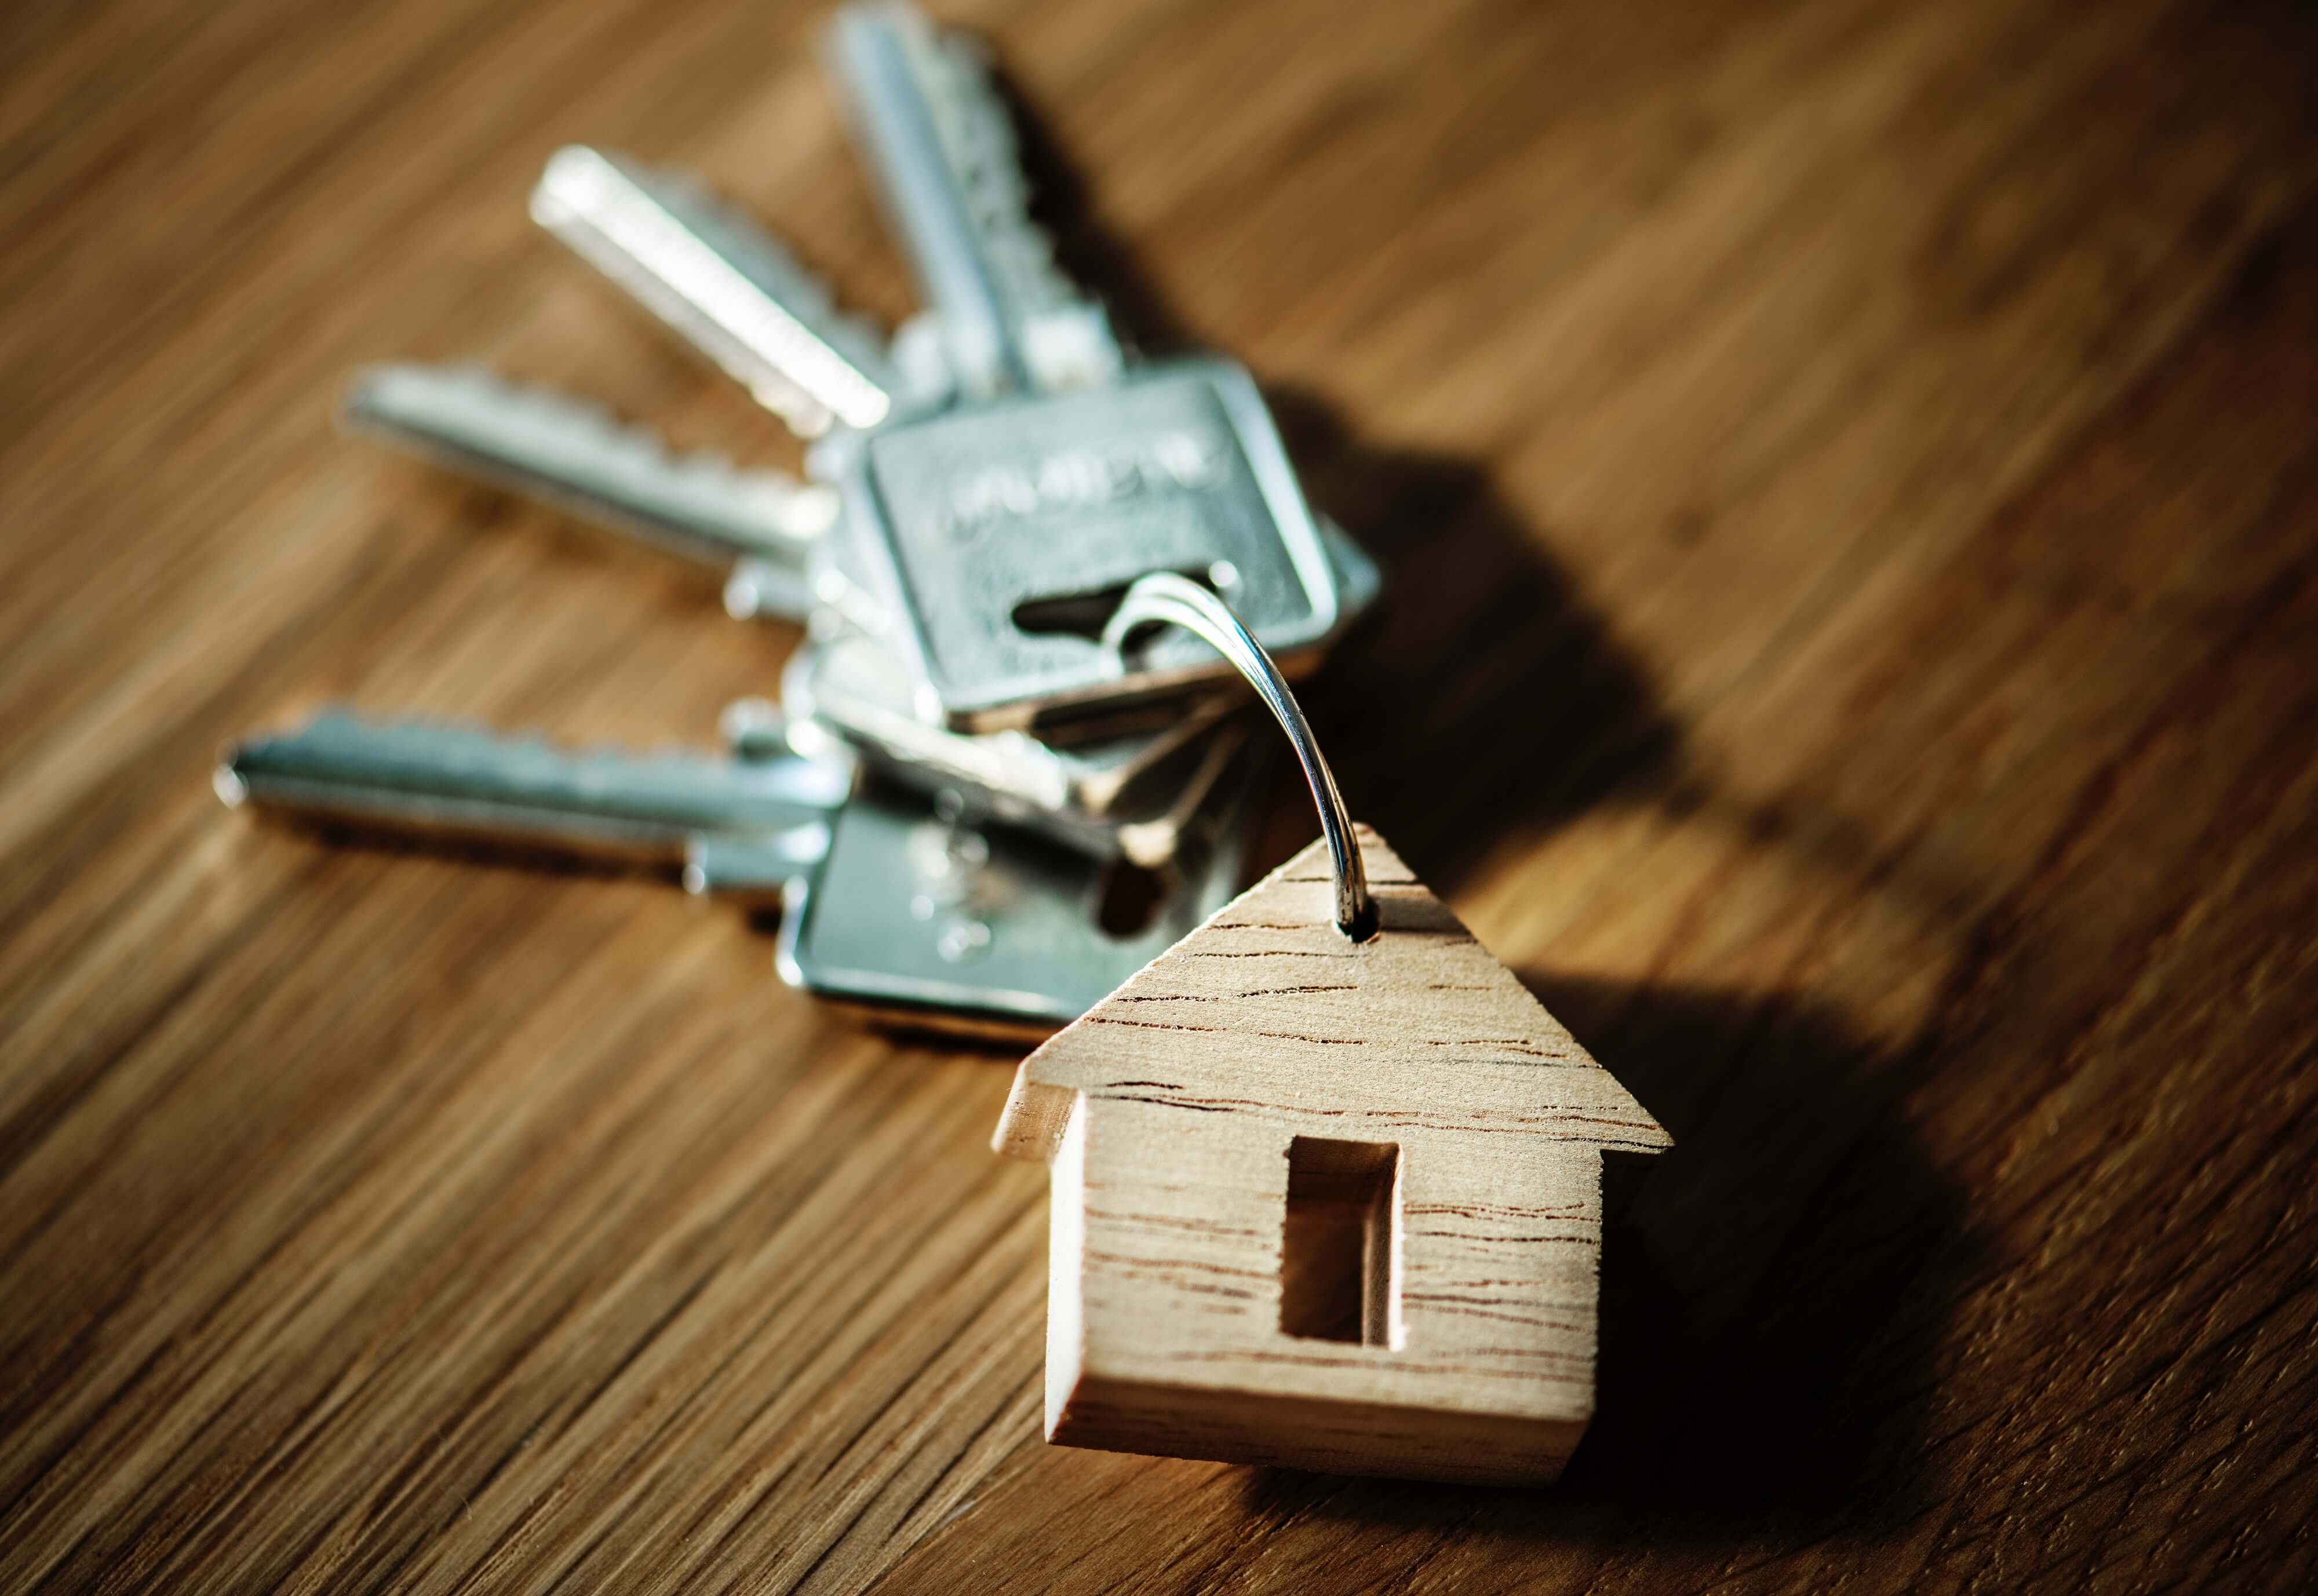 THE PERILS OF THE HOME MORTGAGE PROCESS